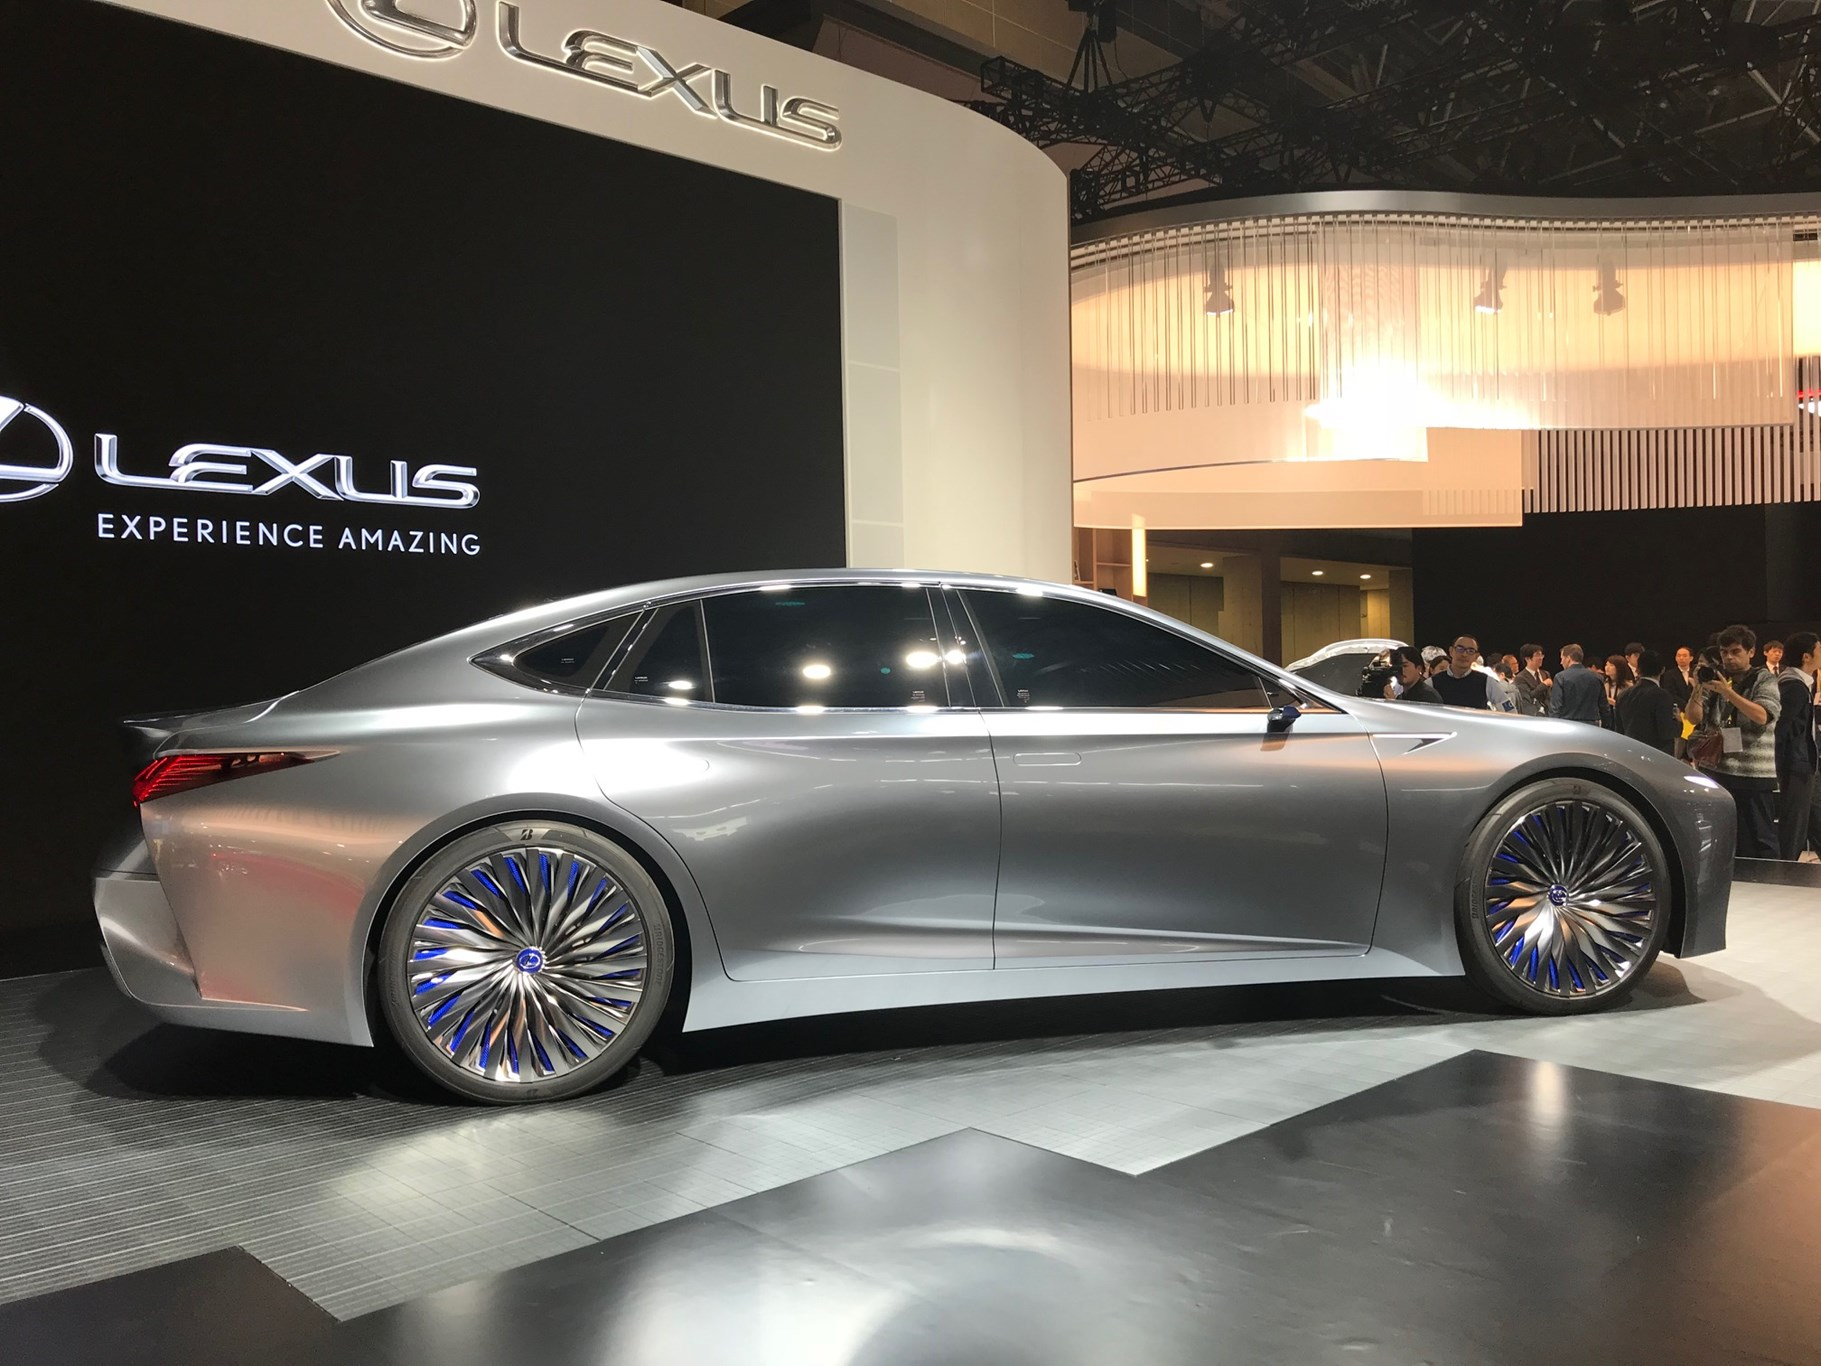 https://car-images.bauersecure.com/pagefiles/77199/lexus-ls-plus-02.jpg